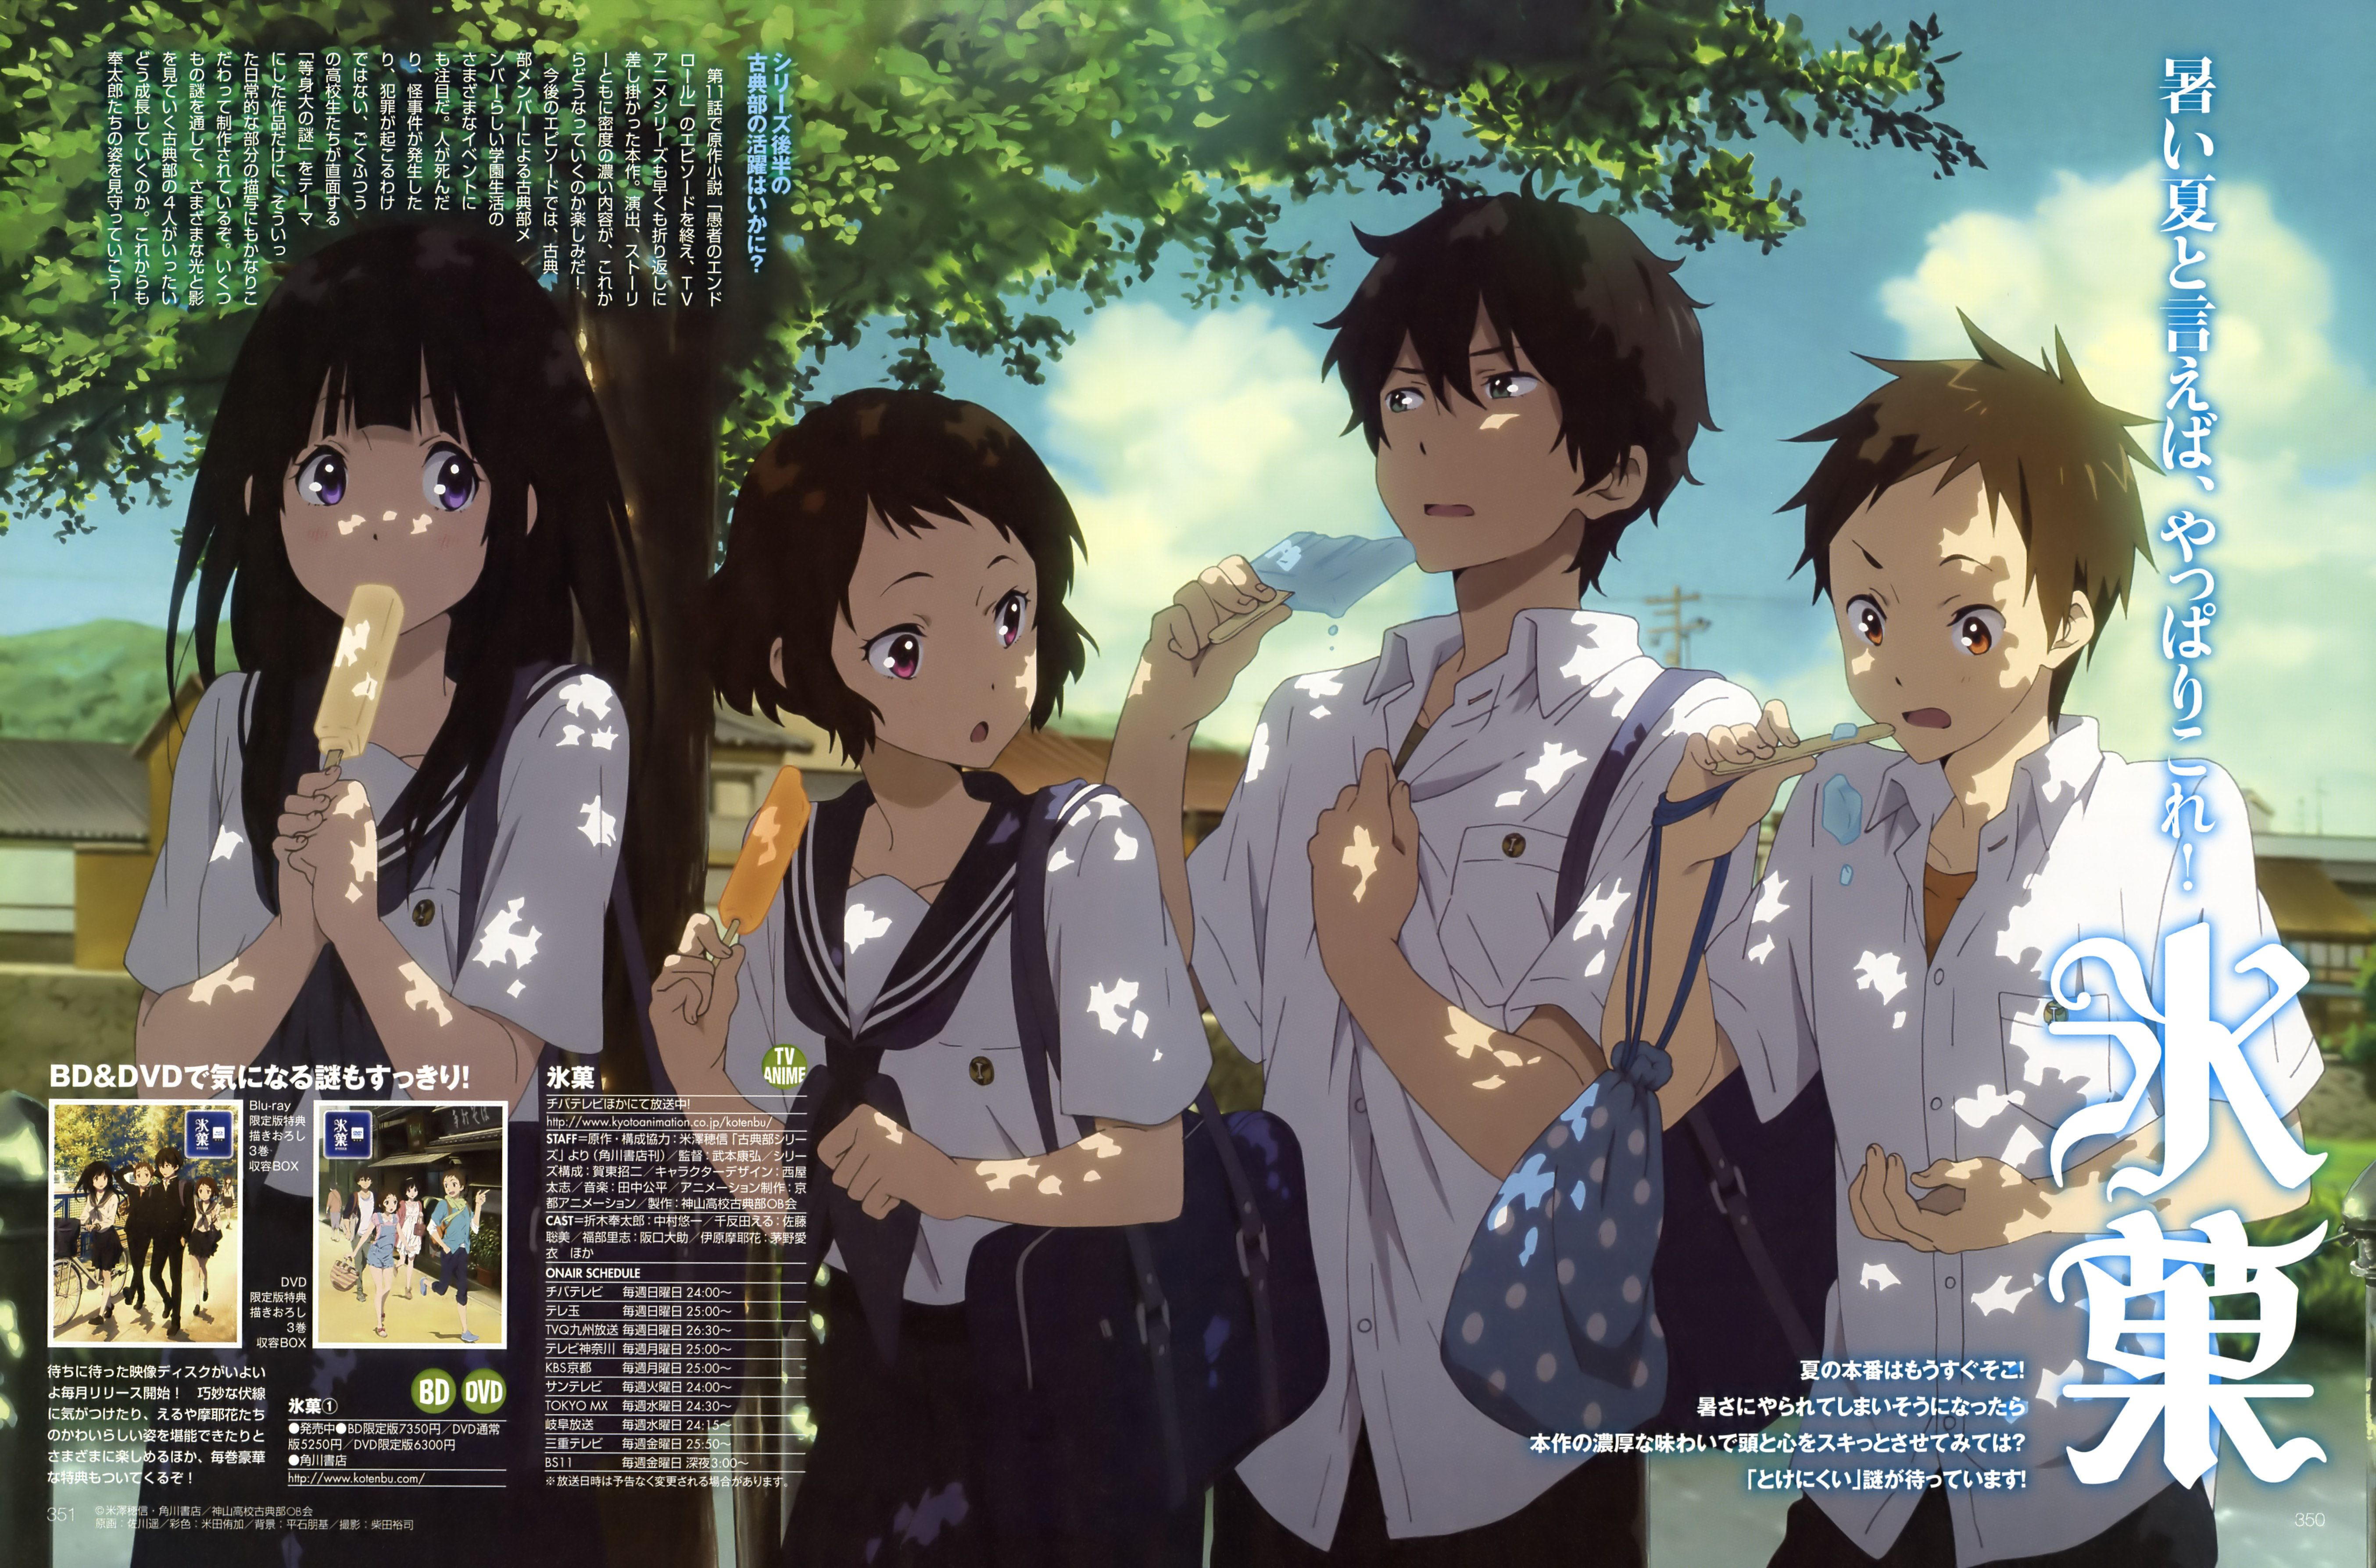 Love Wallpaper Kickass : Download Hyouka completed [1280*720] HD Torrent - Kickass ...